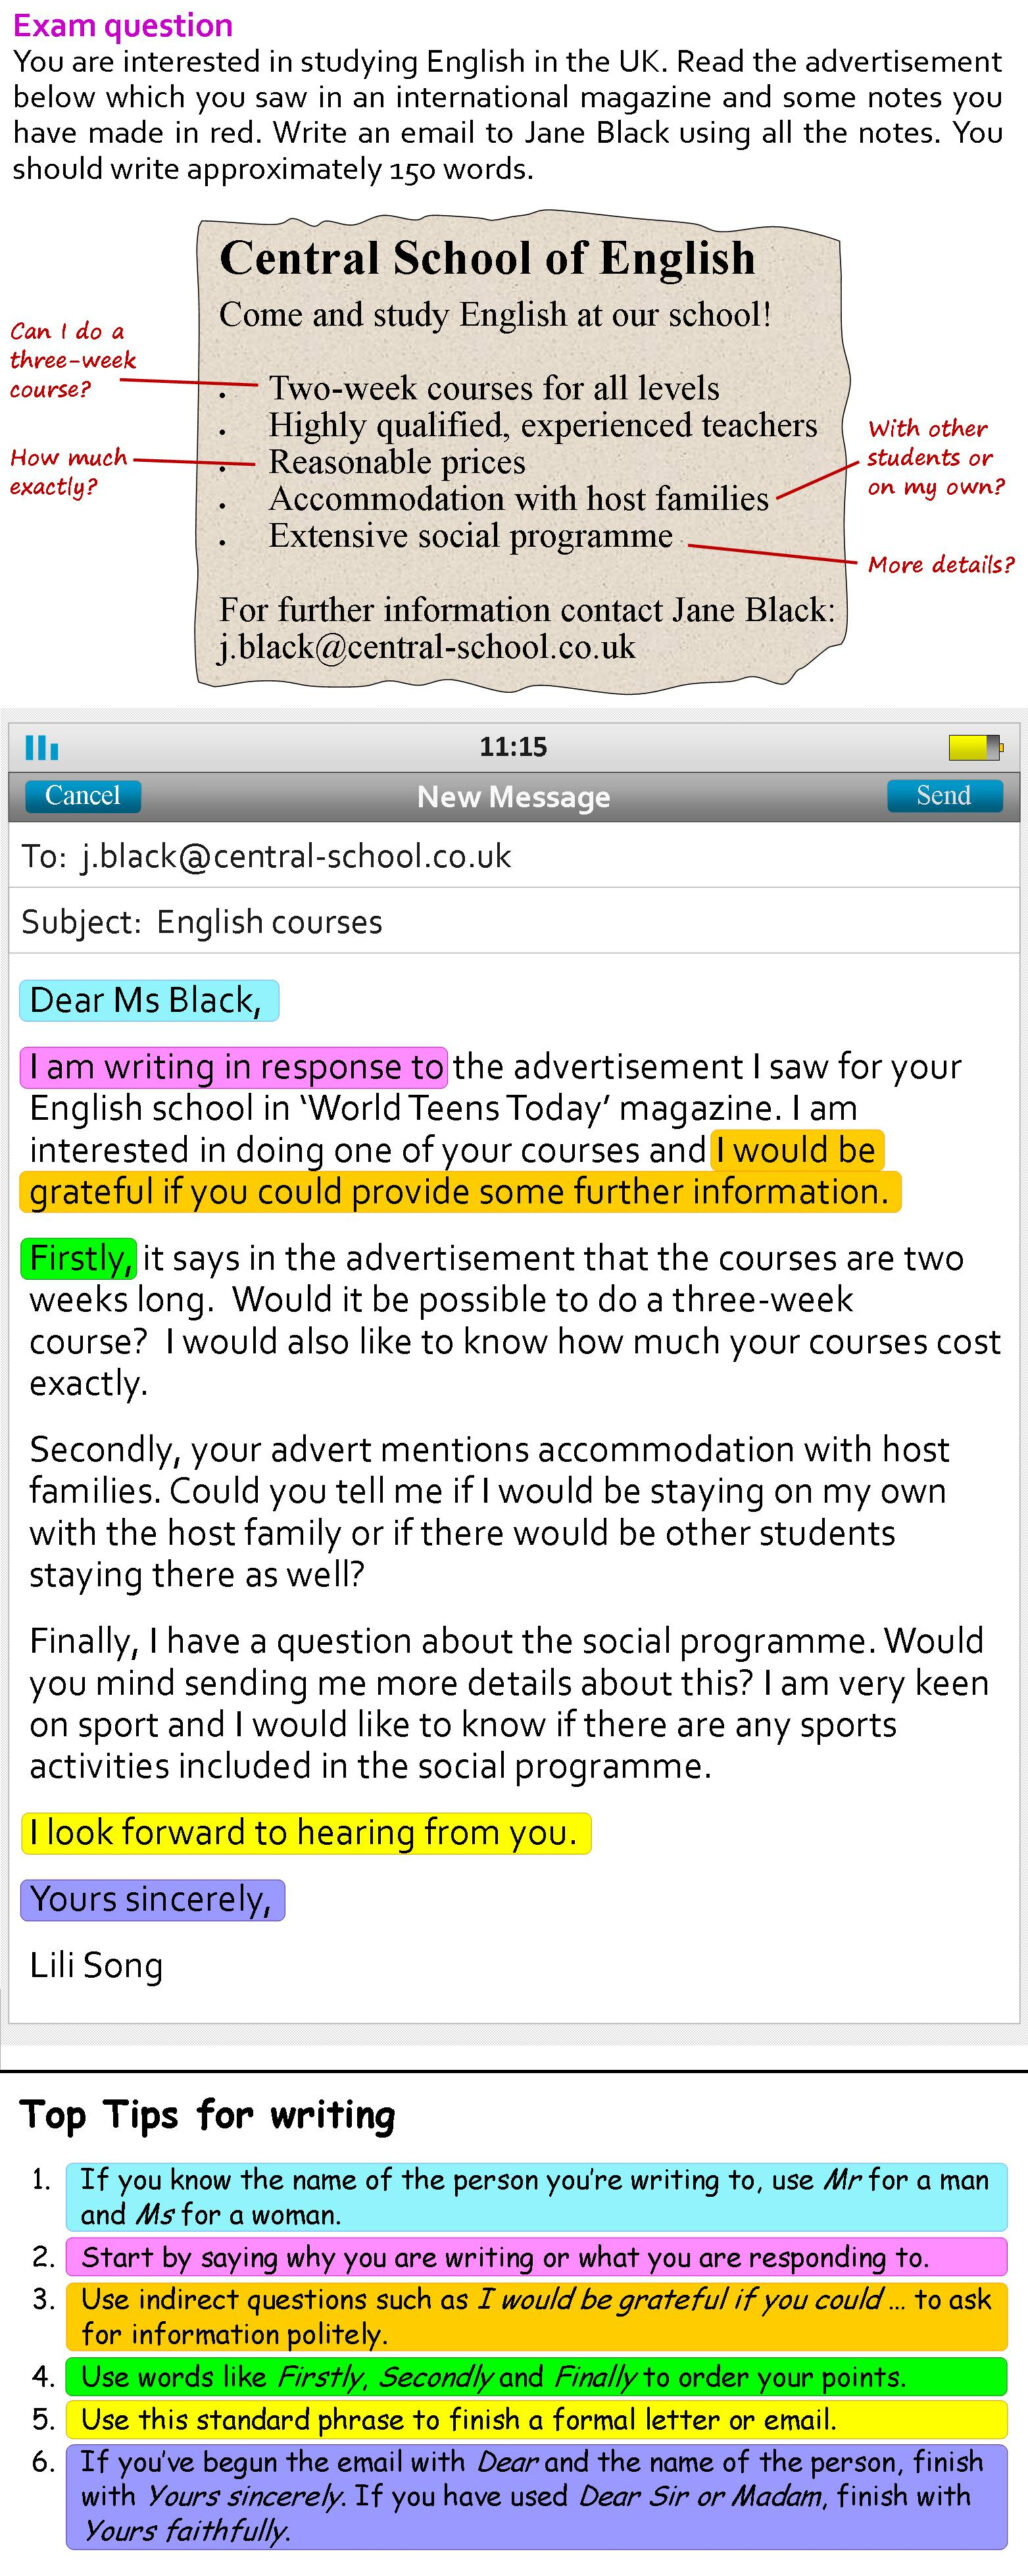 A More Formal Email | Learnenglish Teens - British Council pertaining to Alphabet Worksheets British Council